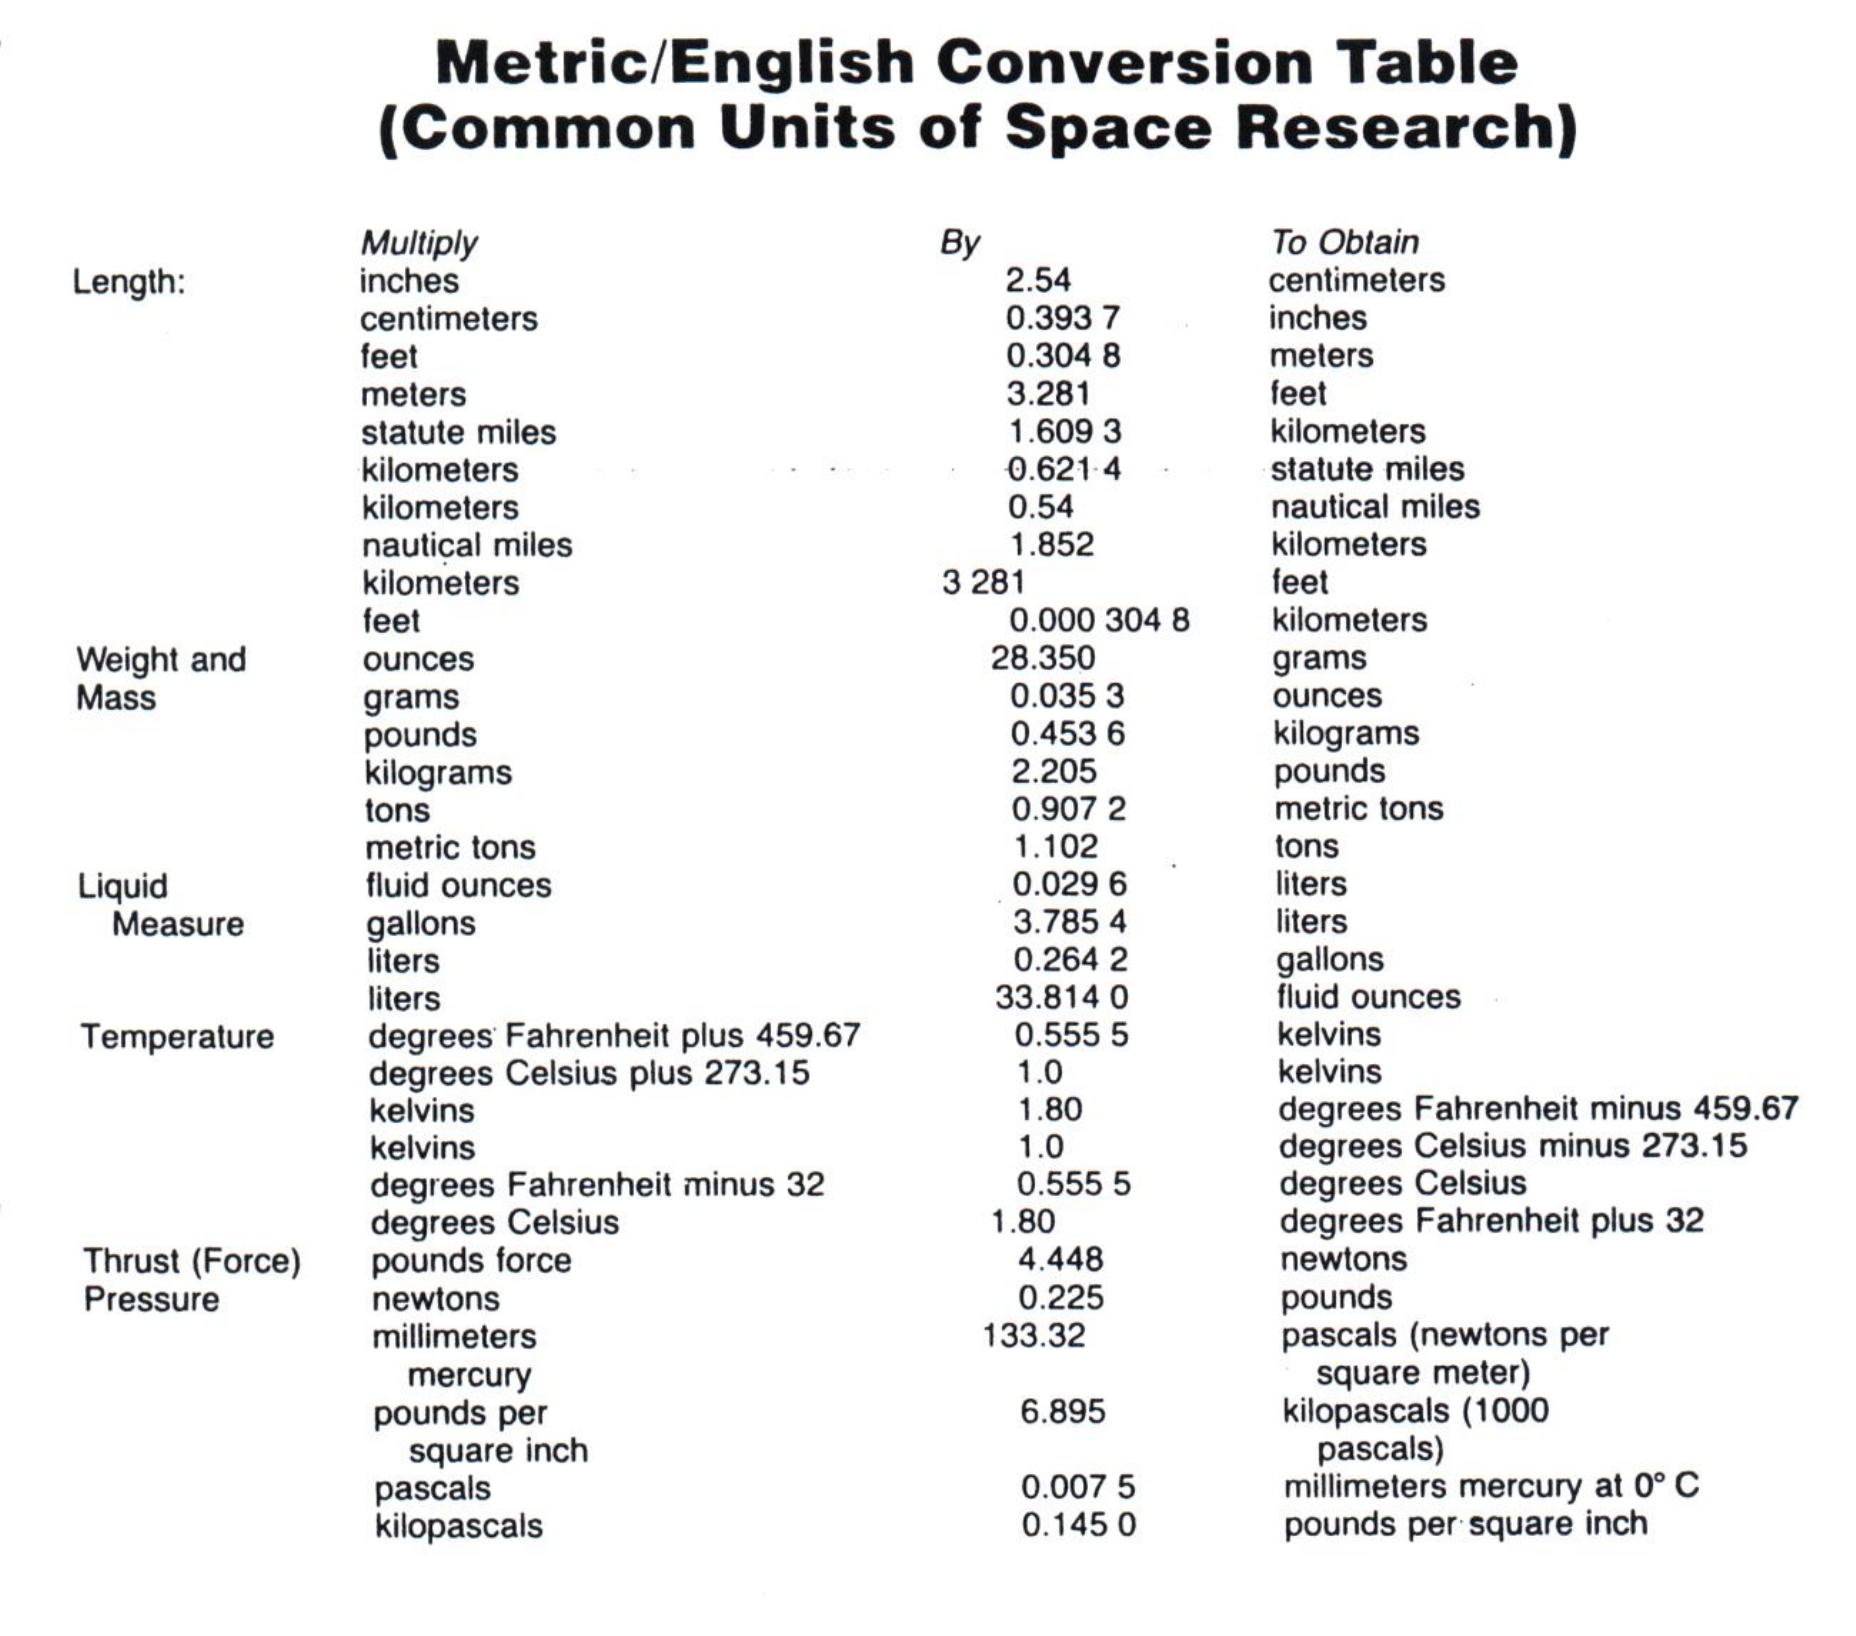 metric english conversion table free download